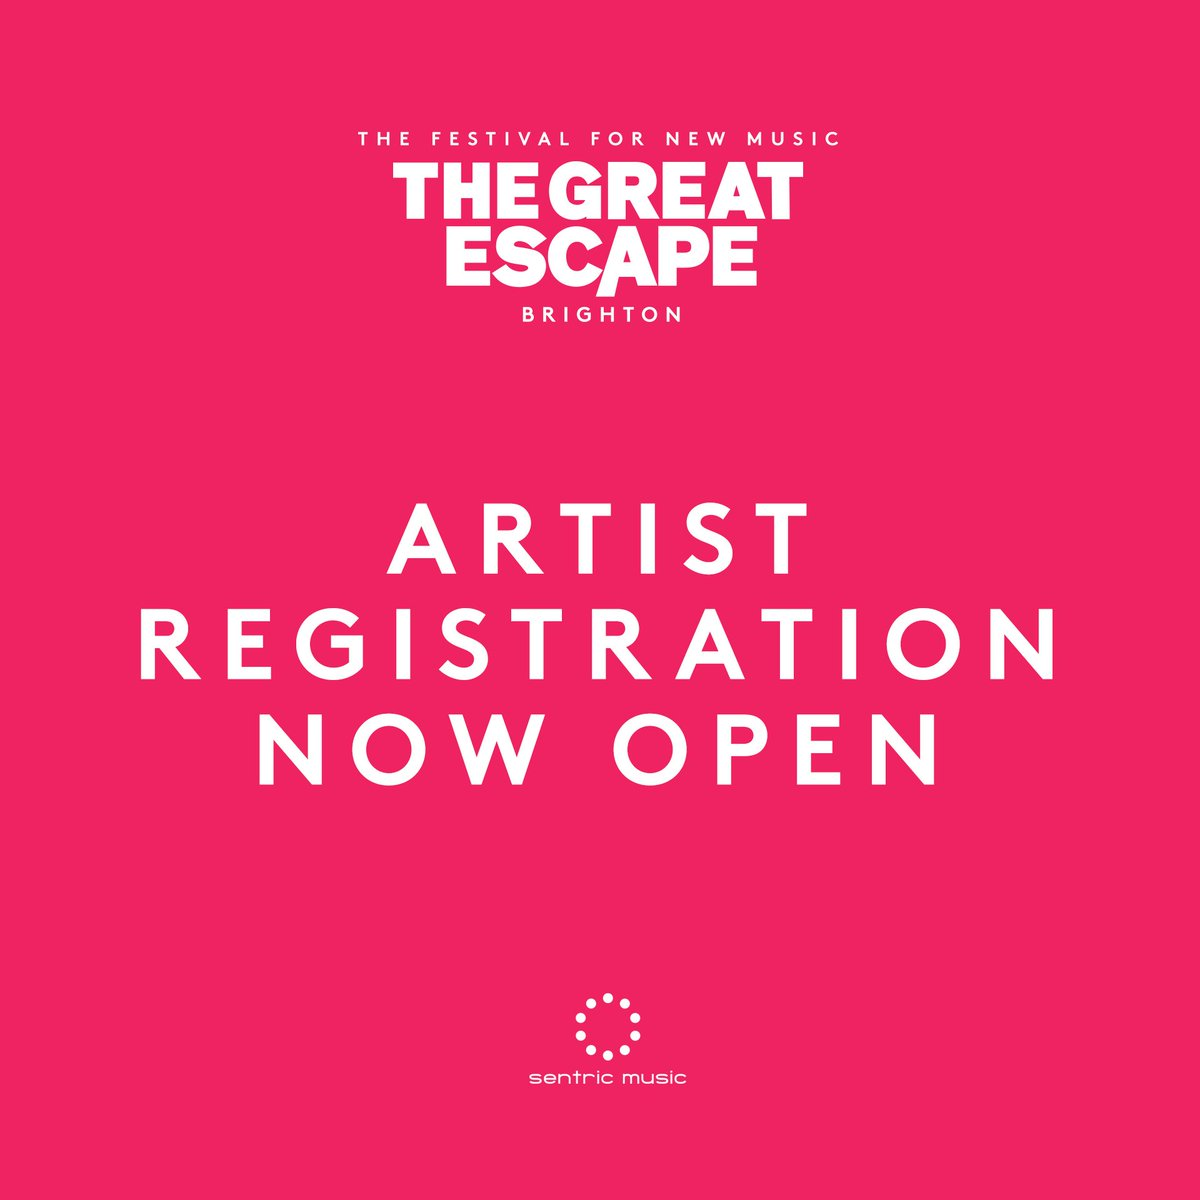 Are you an artist? Yes you...👀 Wanna play #TGE19? Now is your chance to step up bit.ly/ARTREG2019